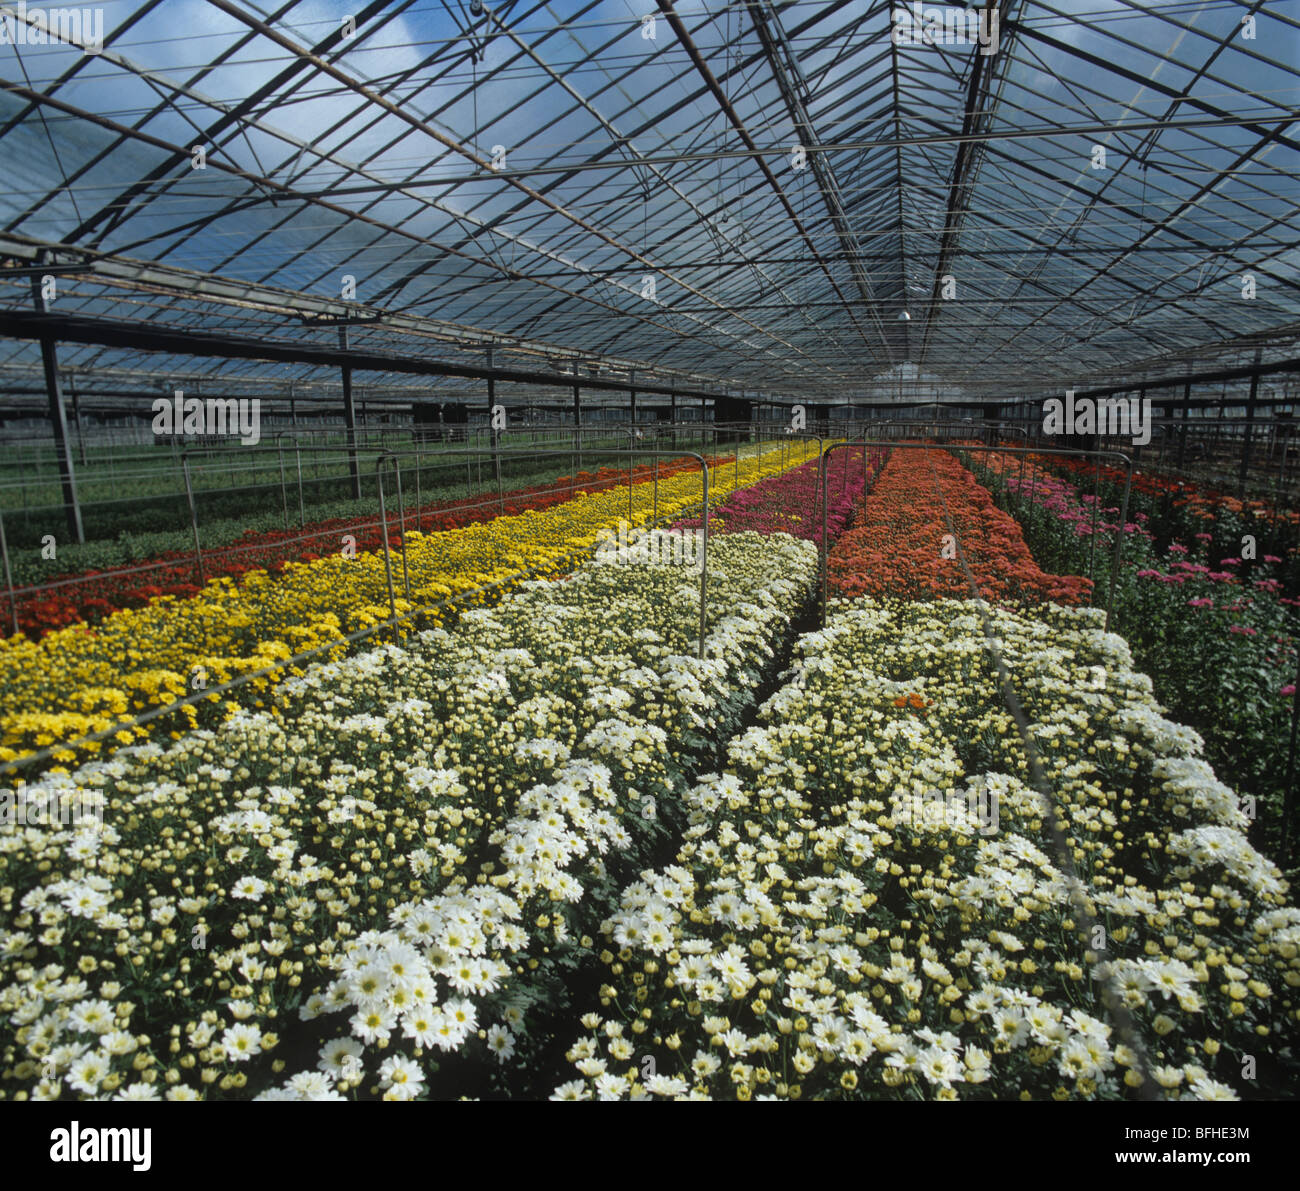 Large glasshouse with flowering spray Chrysanthemum crop, Sandy, Bedfordshire - Stock Image